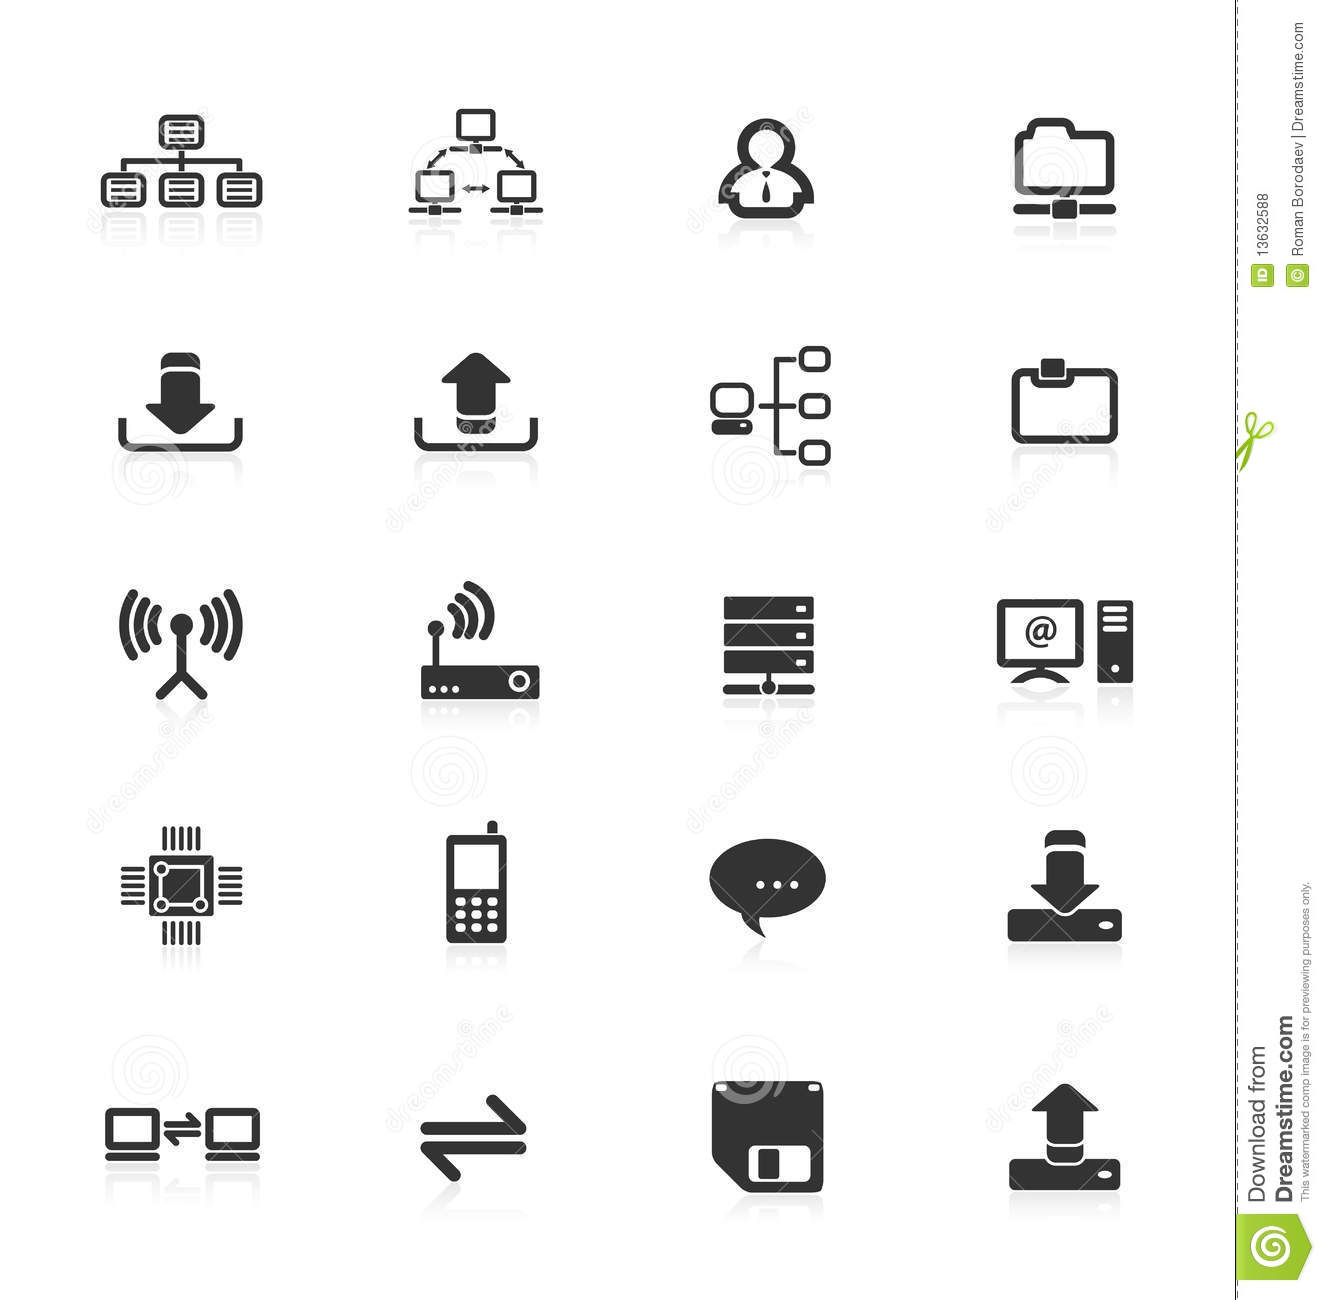 Computer server equipment mobile phone icons icon upload download files folder file CPU storage router technology web internet set